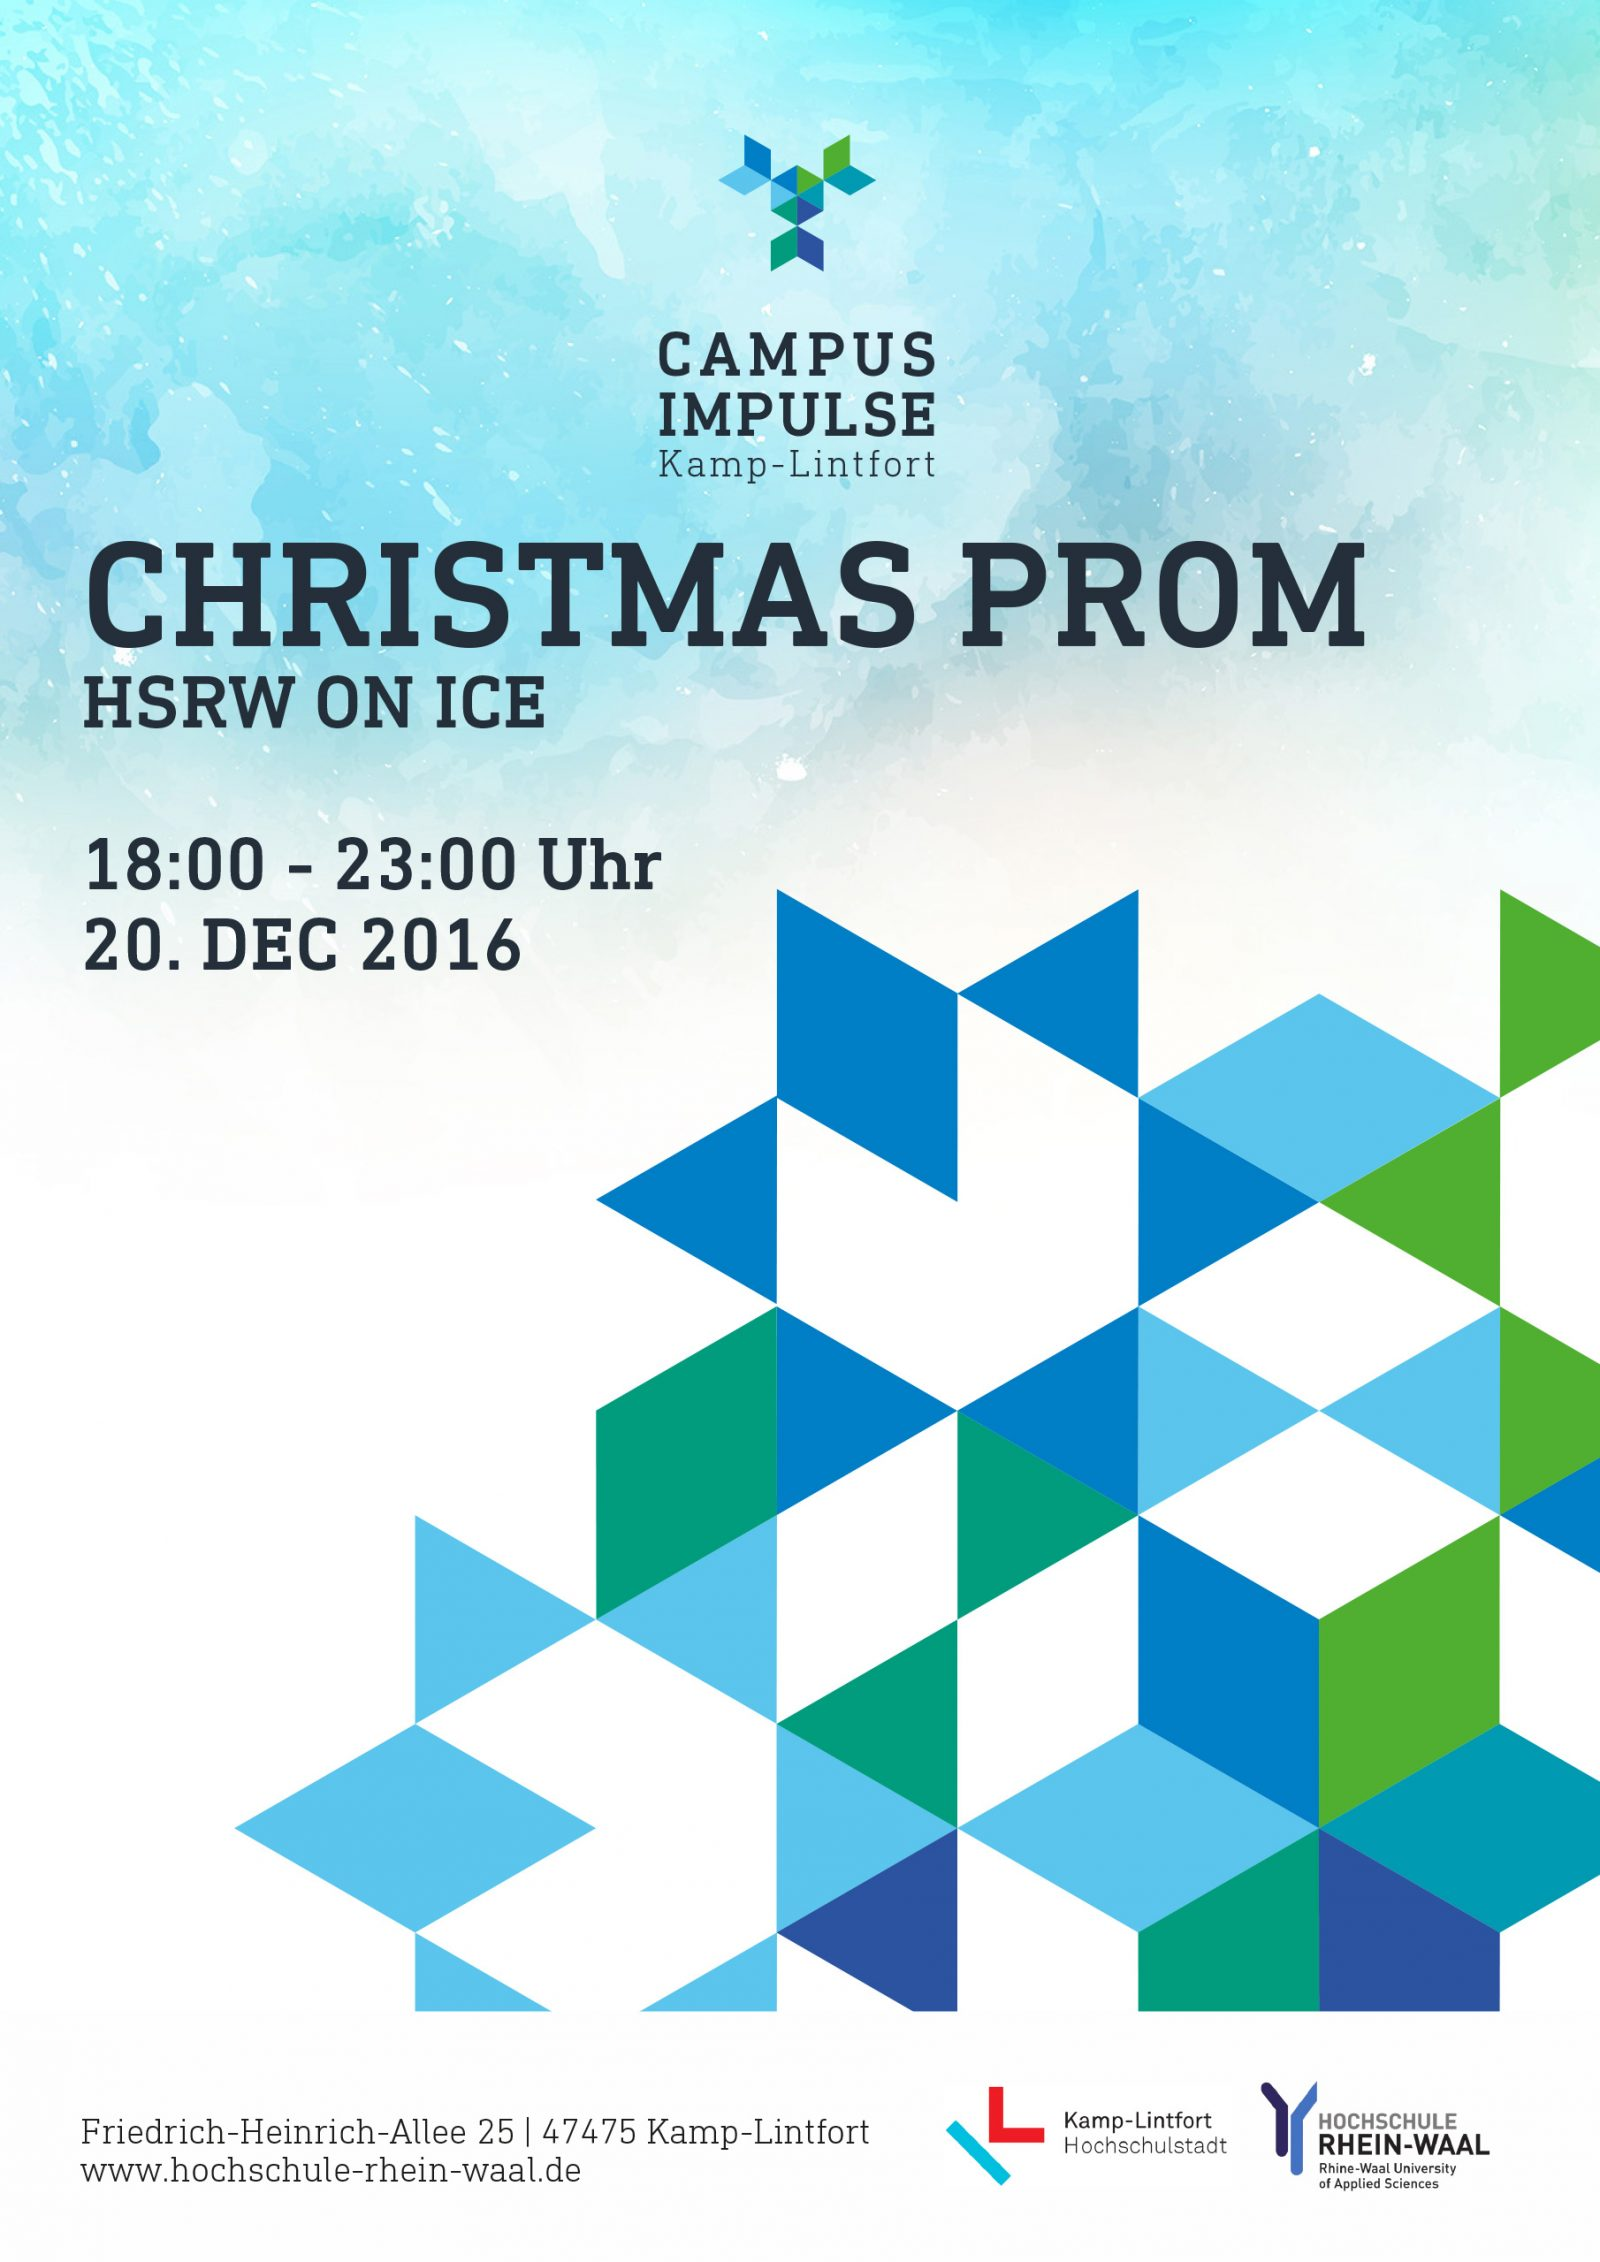 Oelke Kern Campus Impulse Event Poster